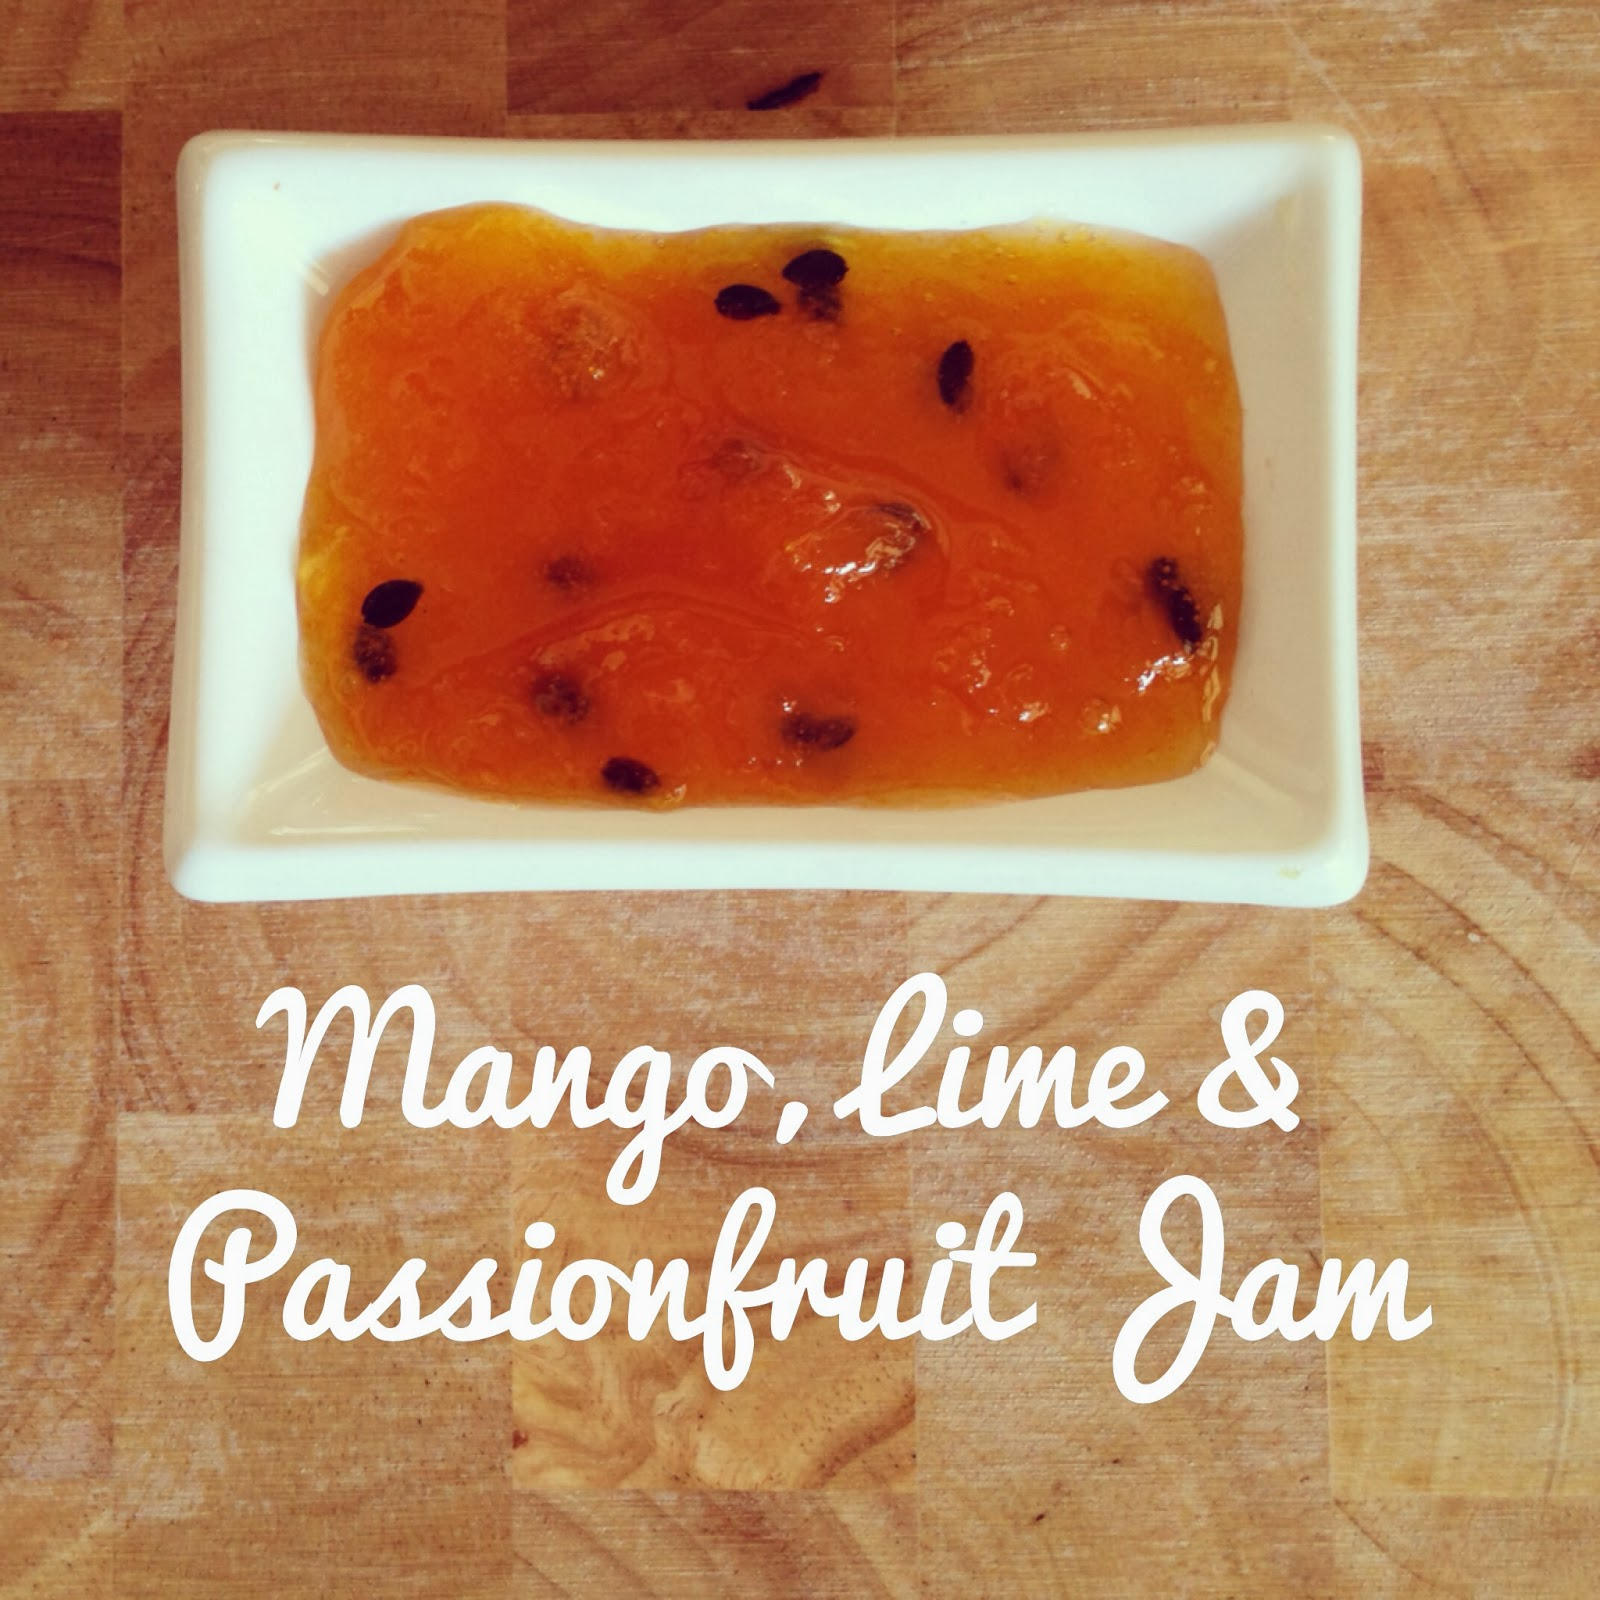 Mums in the Kitchen: Mango, Lime & Passionfruit Jam